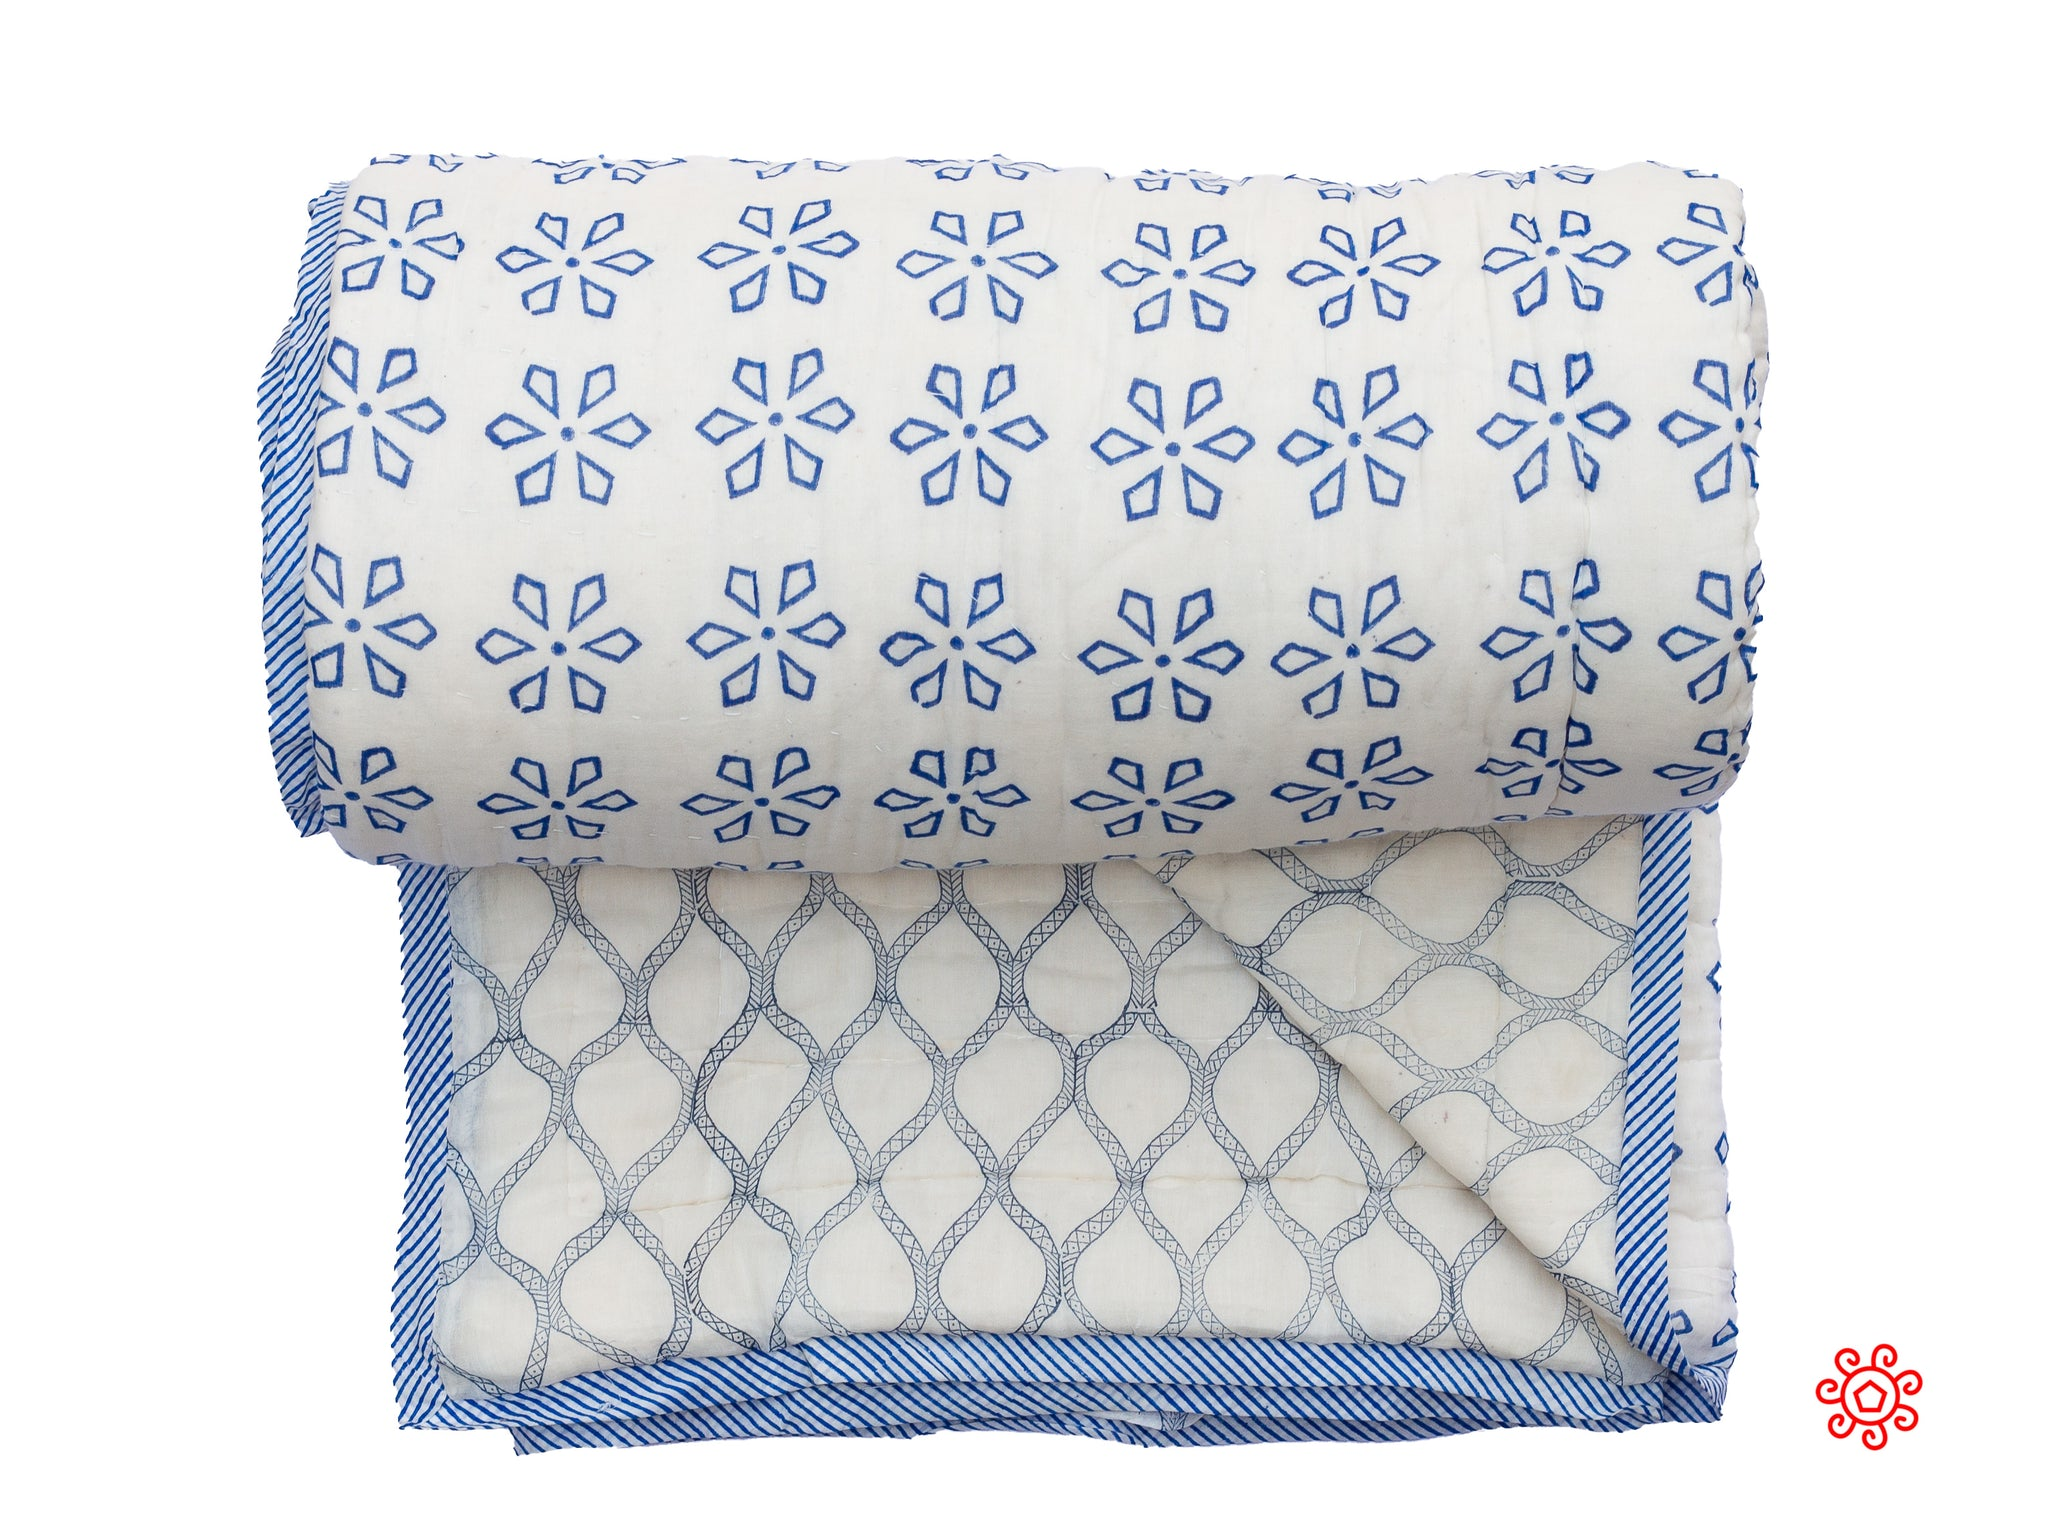 Handmade Block Printed Queen Quilt Blue and White - QBP 307